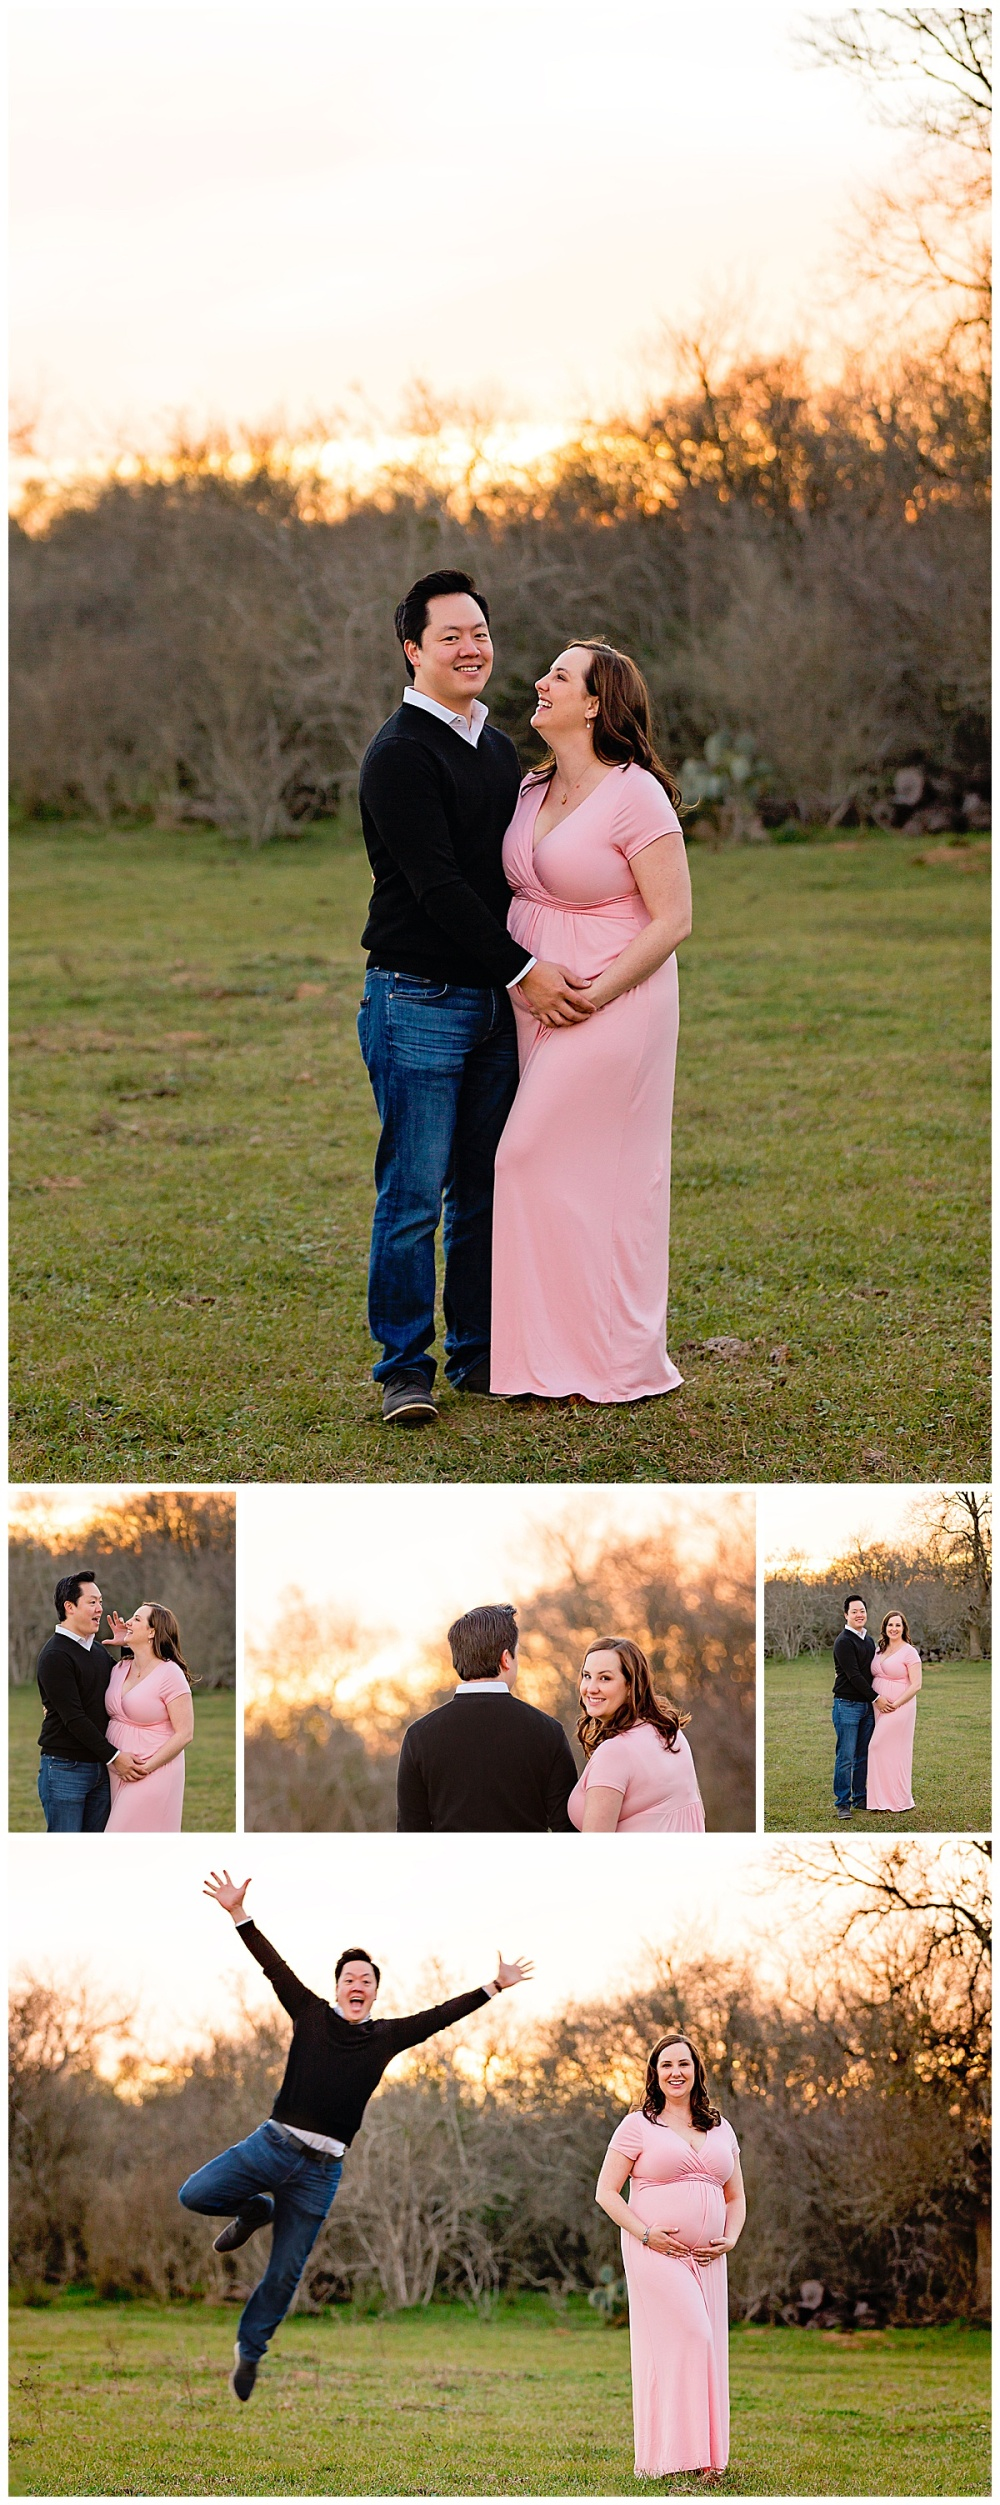 Maternity-Photographer-Texas-Carly-Barton-Photography-LaVernia-Photos_0011.jpg